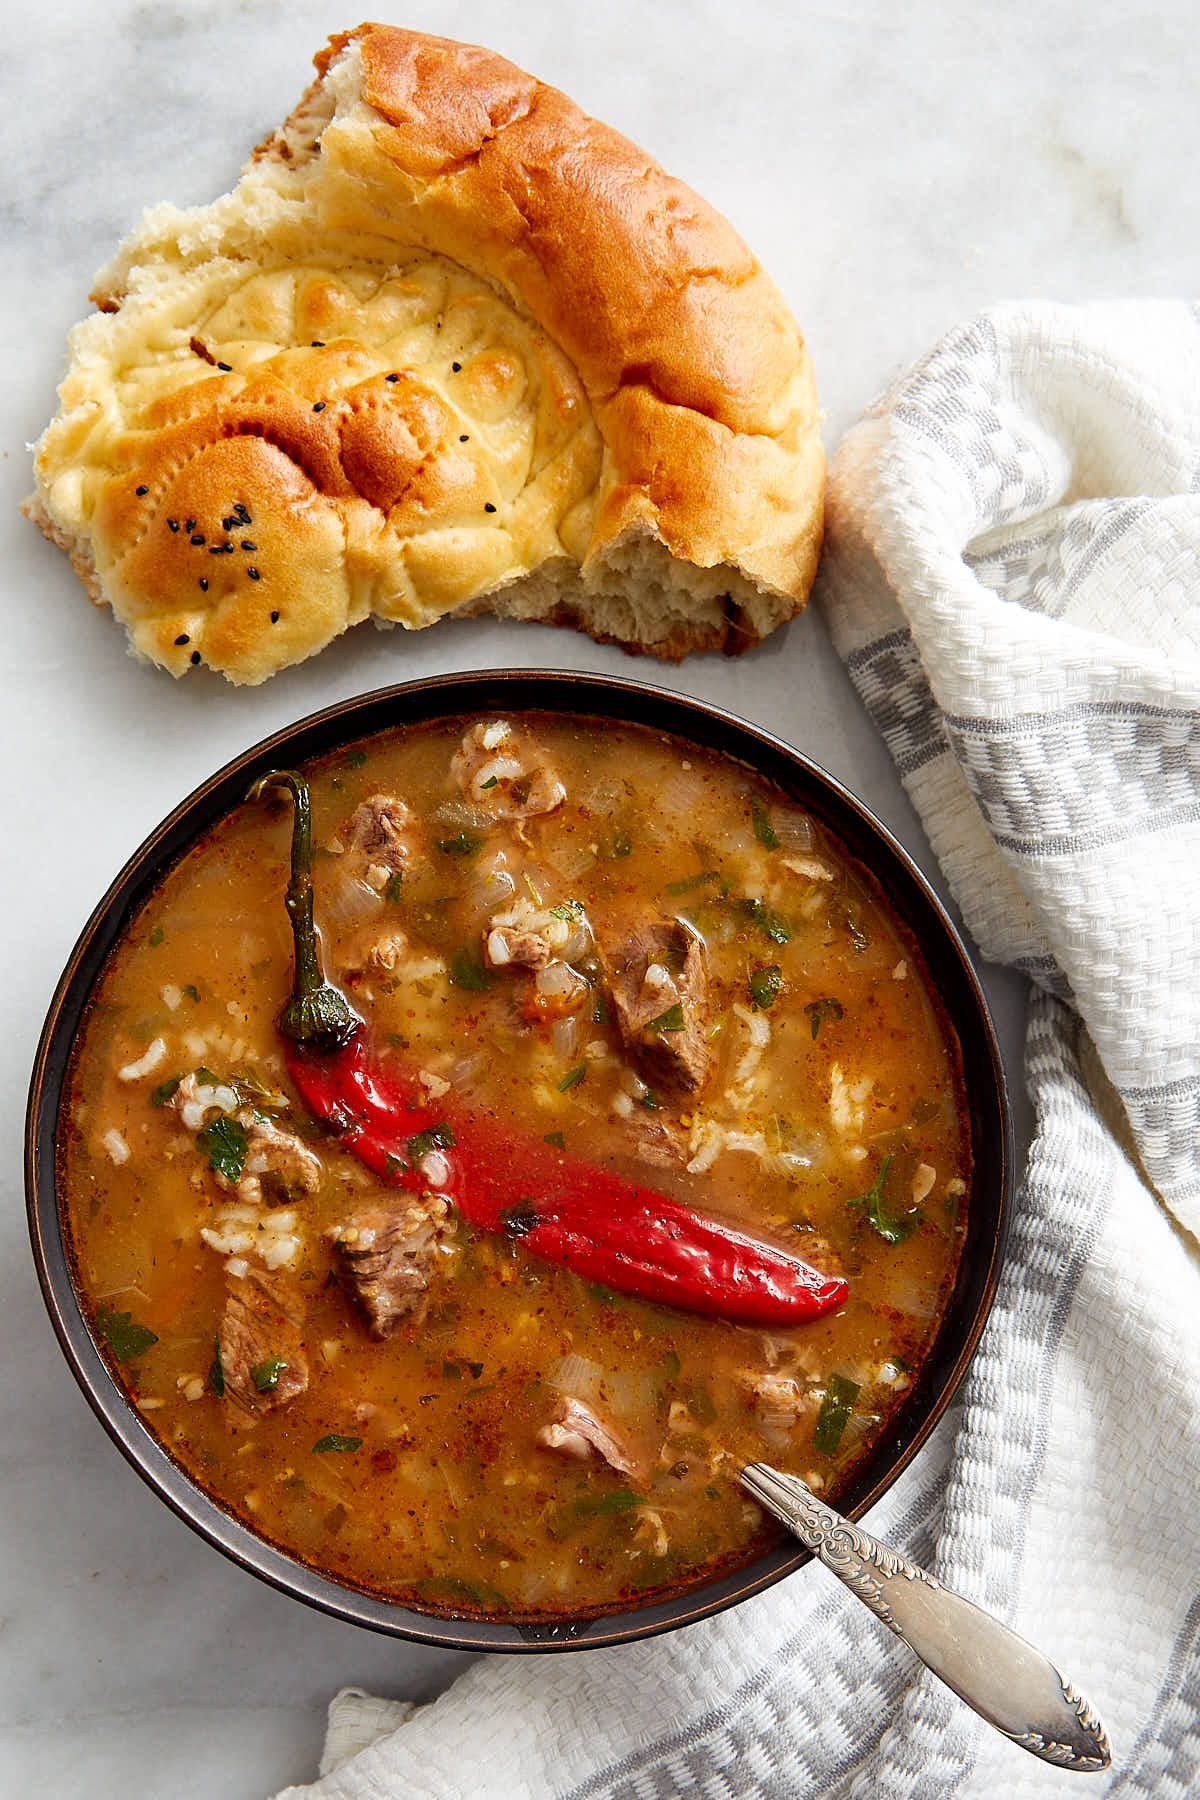 Beef Soup Kharcho - a famous Georgian soup known and loved all over the world. This is a classic version that is absolutely the best. Hearty, beefy and so delicious. A perfectly comforting soup for a cold wintry day. | ifoodblogger.com